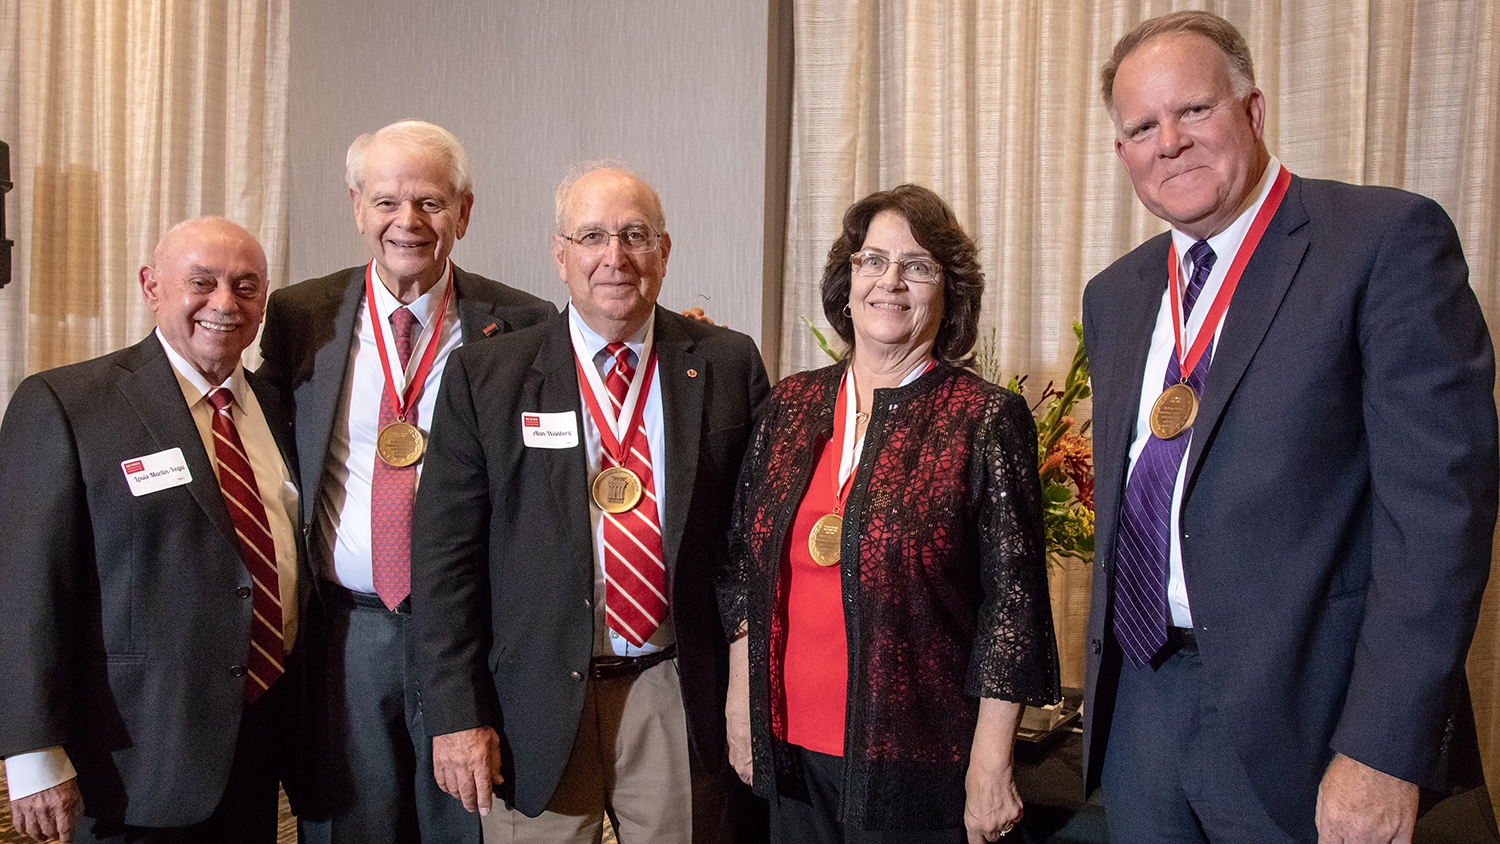 The College of Engineering at North Carolina State University bestowed the Distinguished Engineering Alumnus award on Suzanne Gordon, Peter Lehrer, Gil West, and Alan Weinberg.